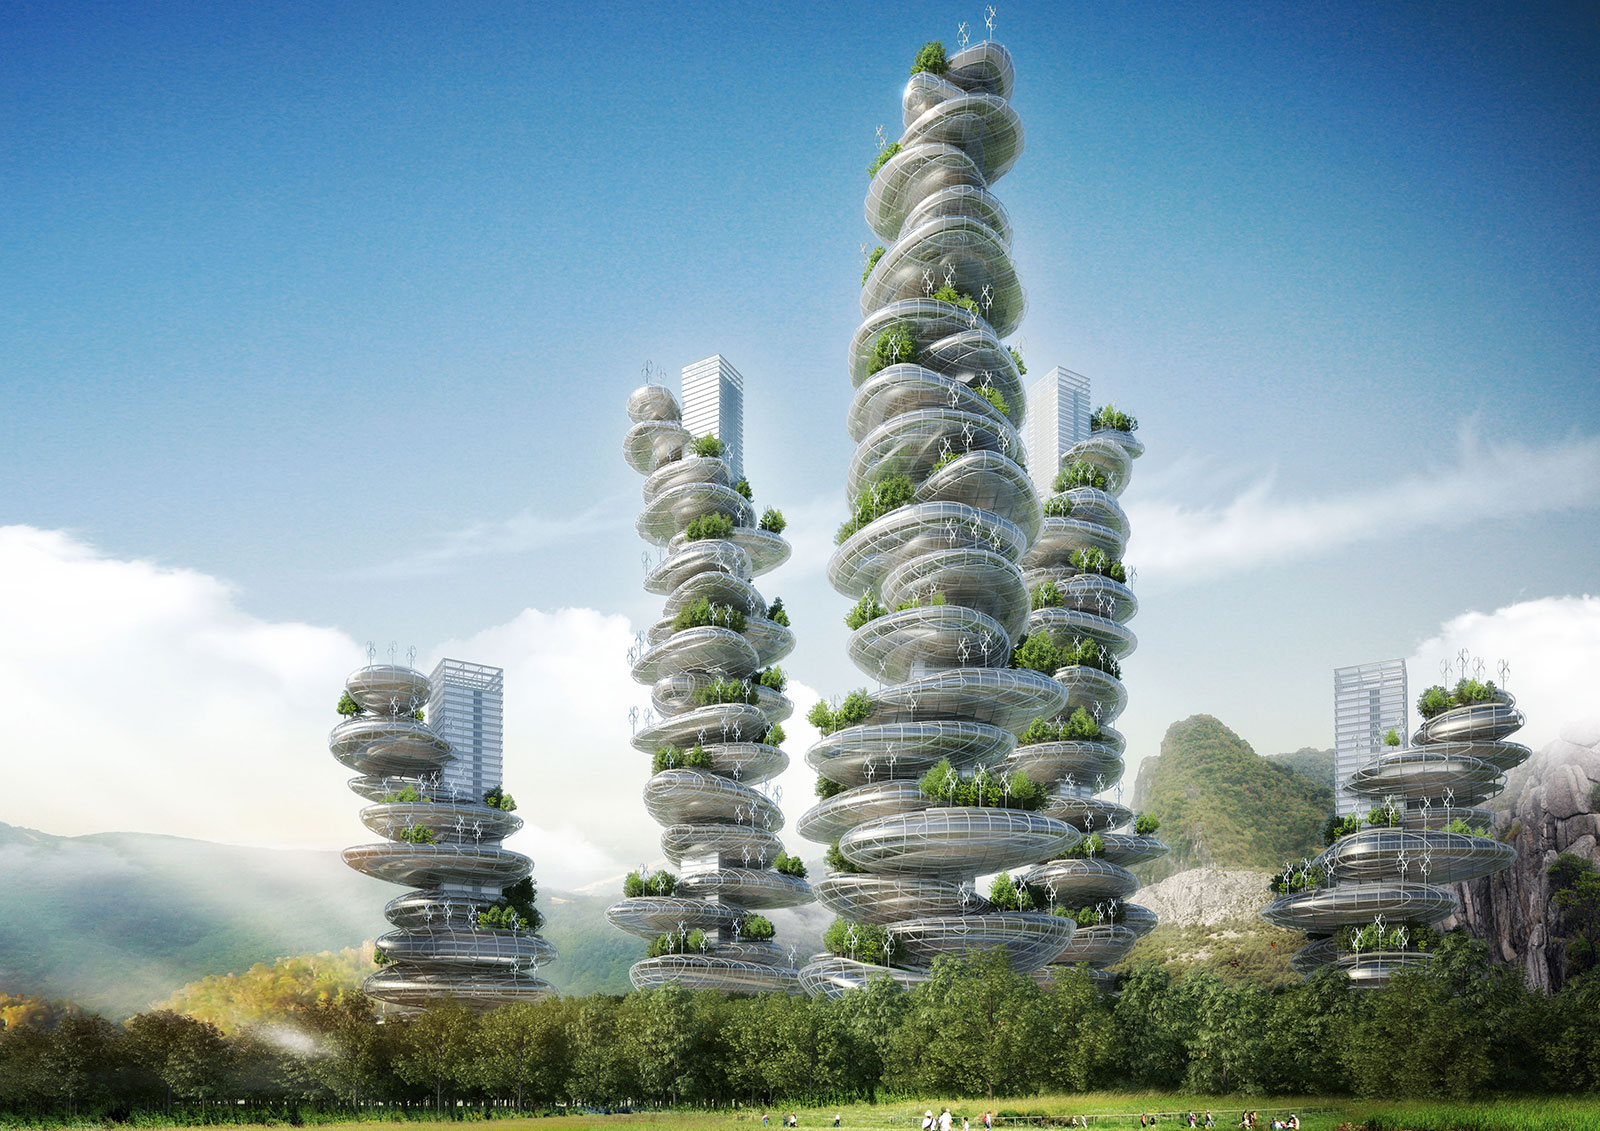 green architecture resembling cairns